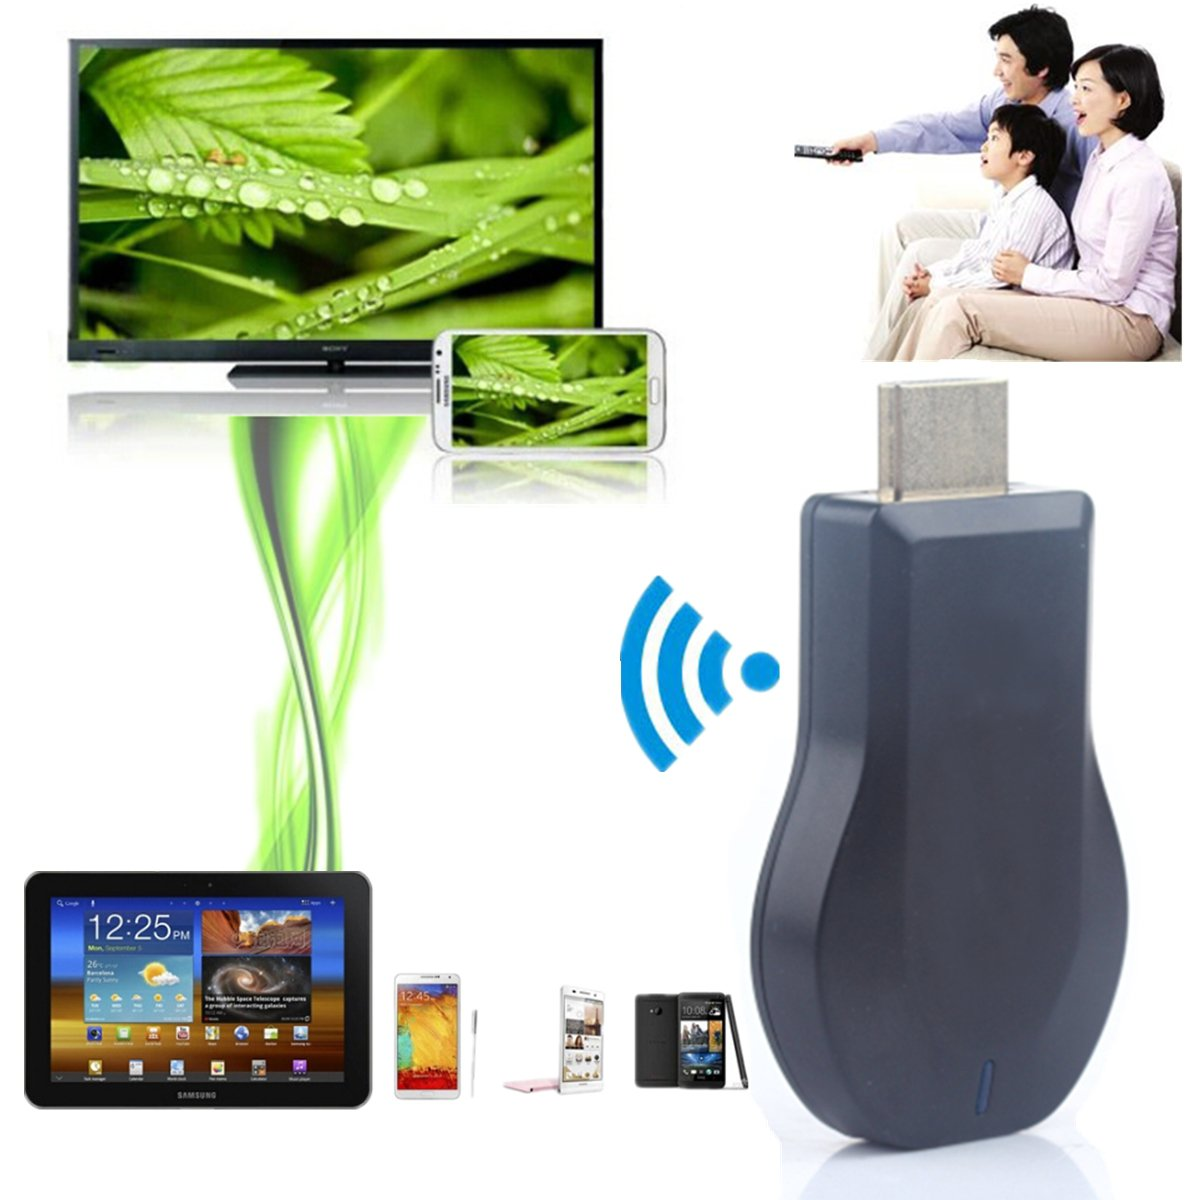 1080P M2 Full HD 3D airplayradioreceiver Wireless WiFi Updated Miracast DLNA Air TV Stick Mini Receiver Screen Mirroring Dongle Adapter Cloud for TV IOS Apple iPad Android Smartphone Win10